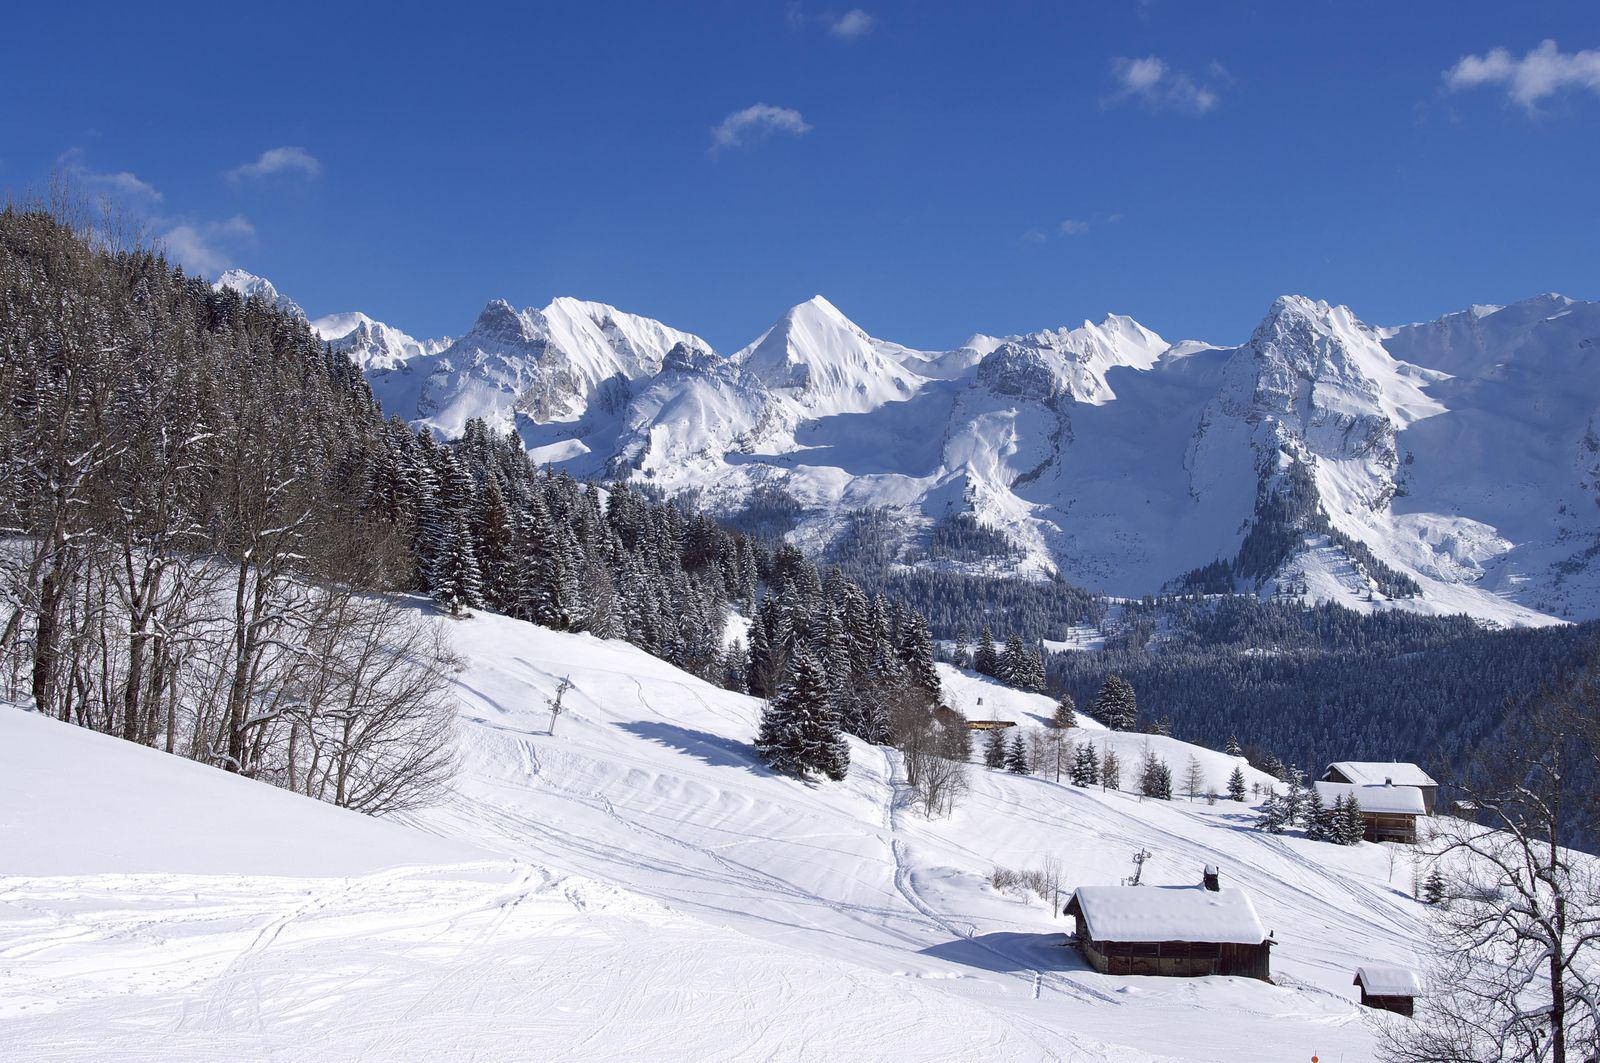 Domaine skiable LE GRAND BORNAND_Le Grand-Bornand (2)